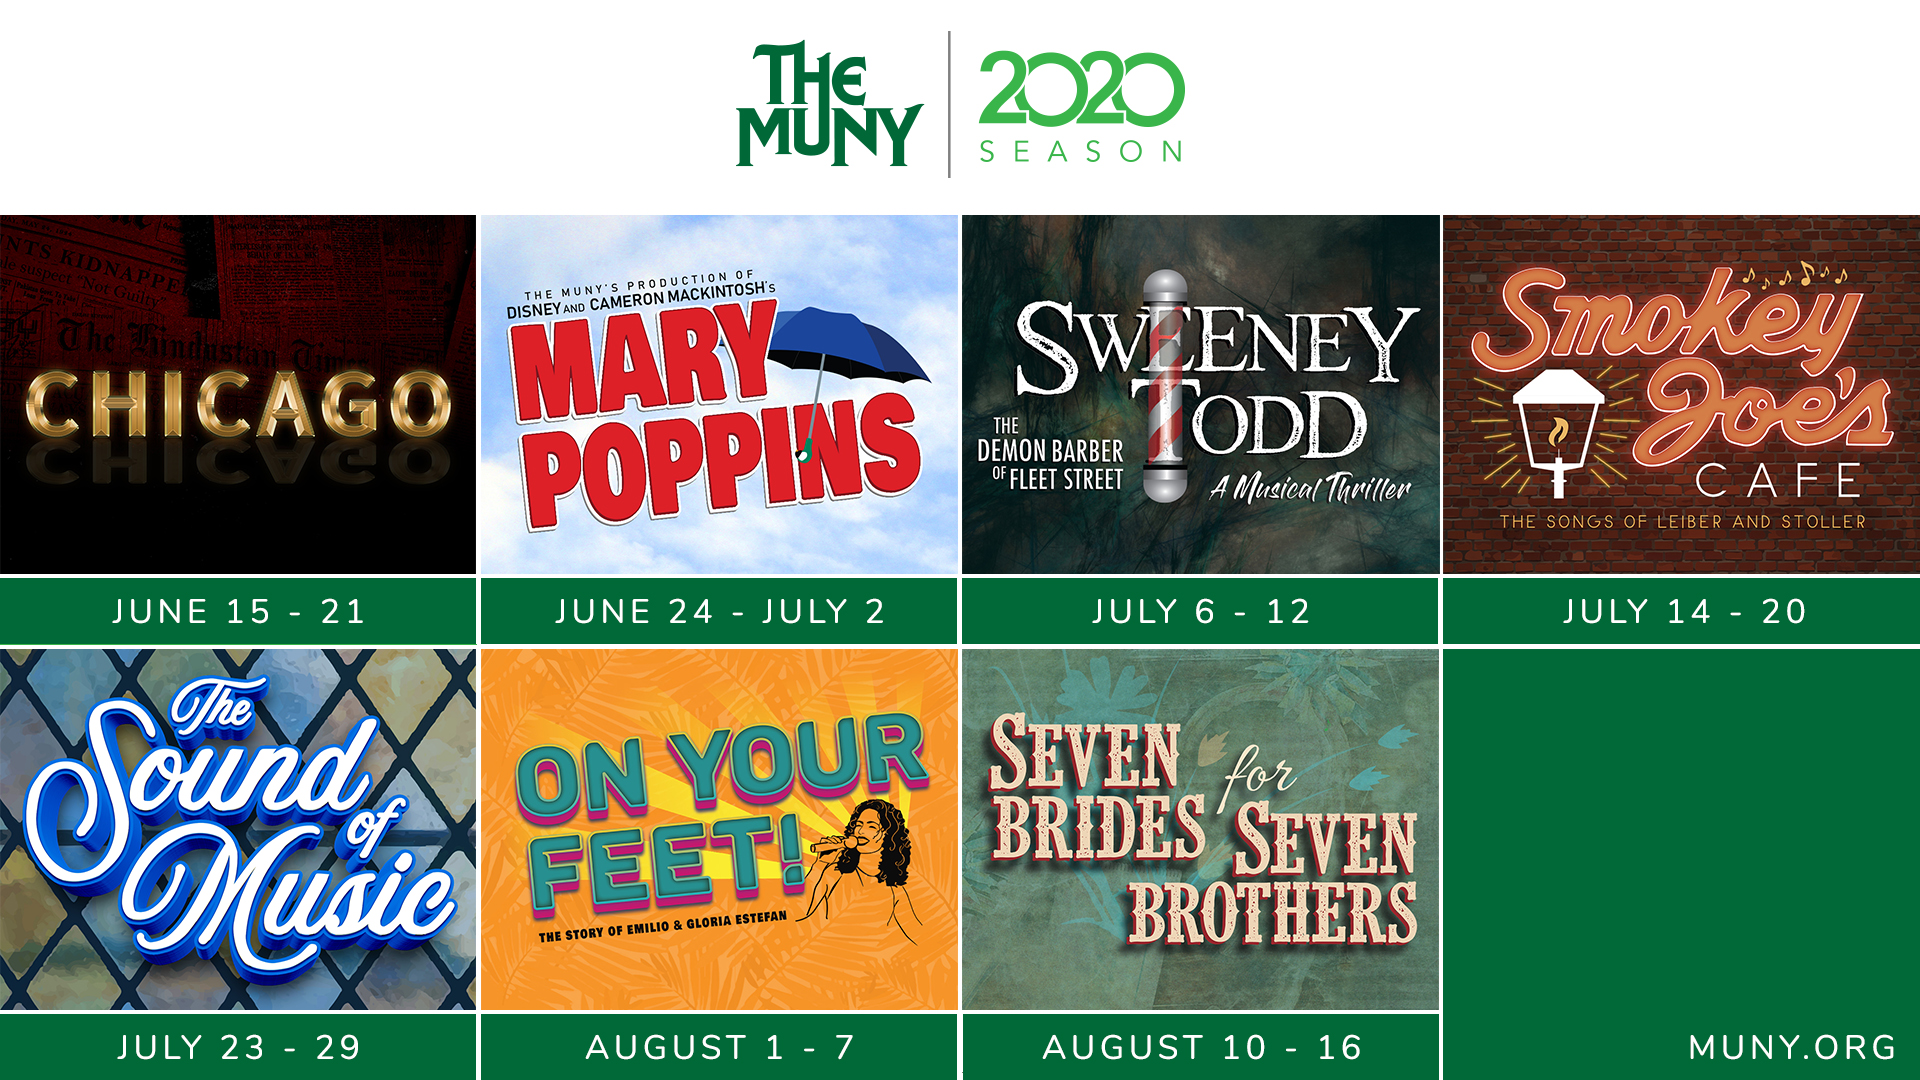 Muny Announces 2020 Season Featuring Regional Premiere Of ON YOUR FEET, MARY POPPINS, SWEENEY TODD & More!